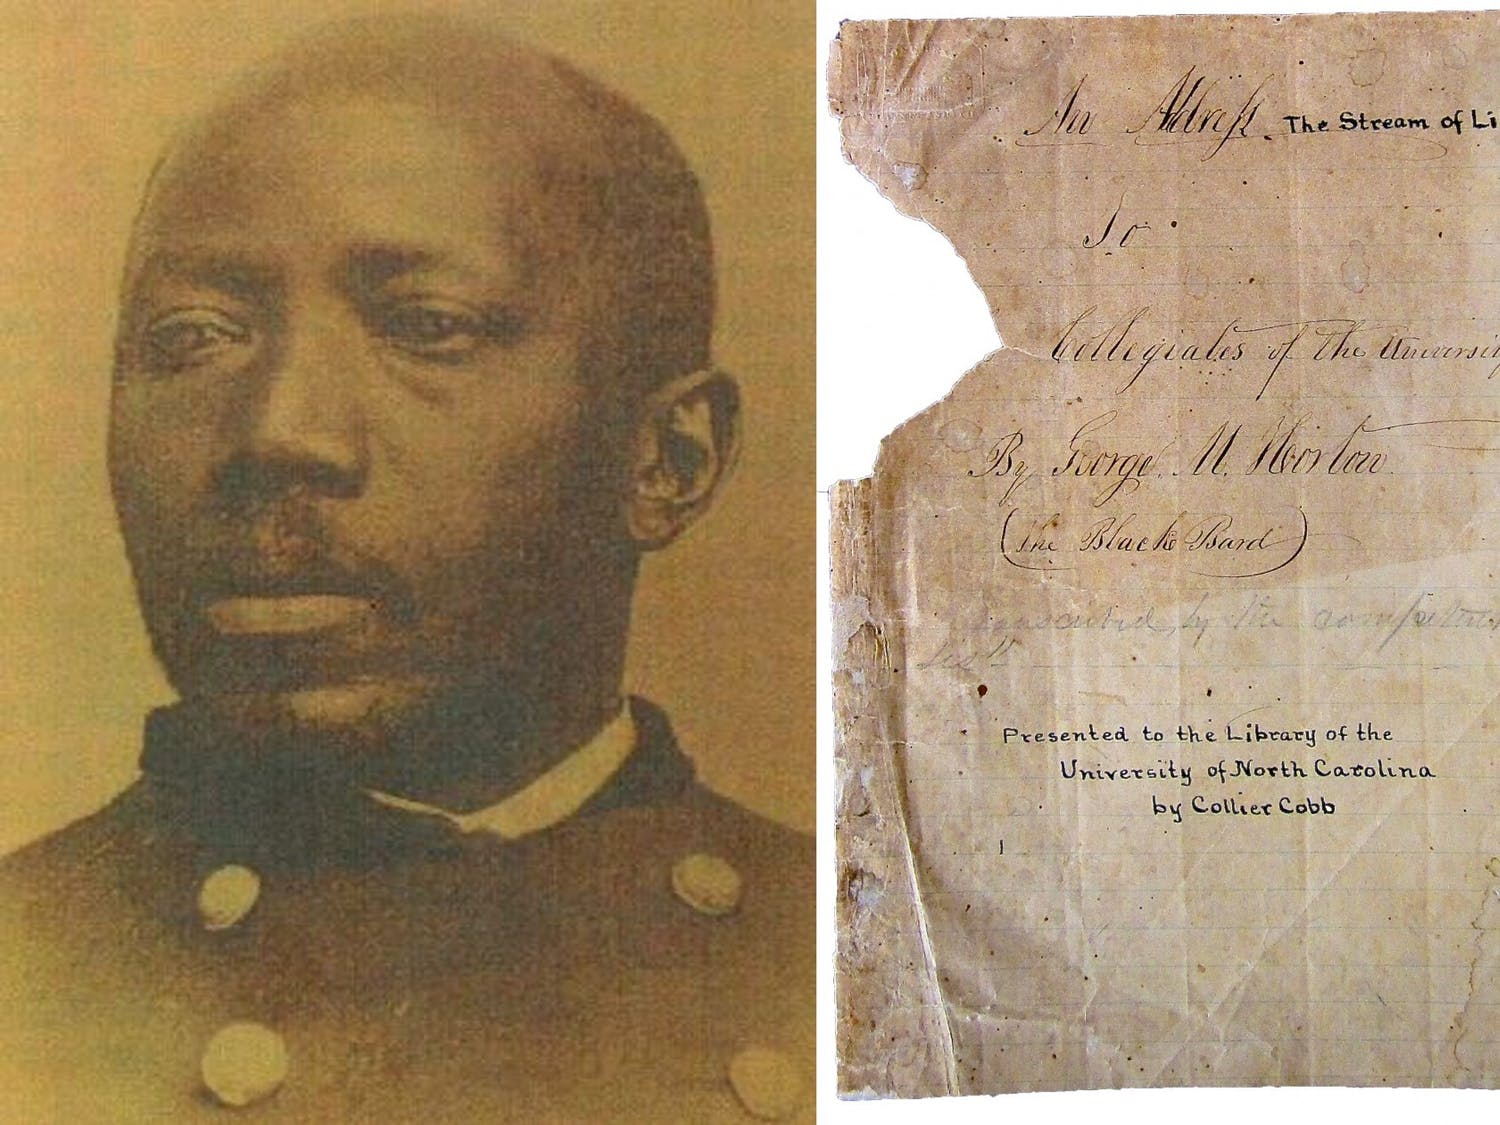 A photo of Martin Delany that is commonly mistaken to be George Moses Horton (left) and the cover page of the lecture Horton gave at one of UNC's commencements (right). Photos courtesy of Wilson Library Collections.